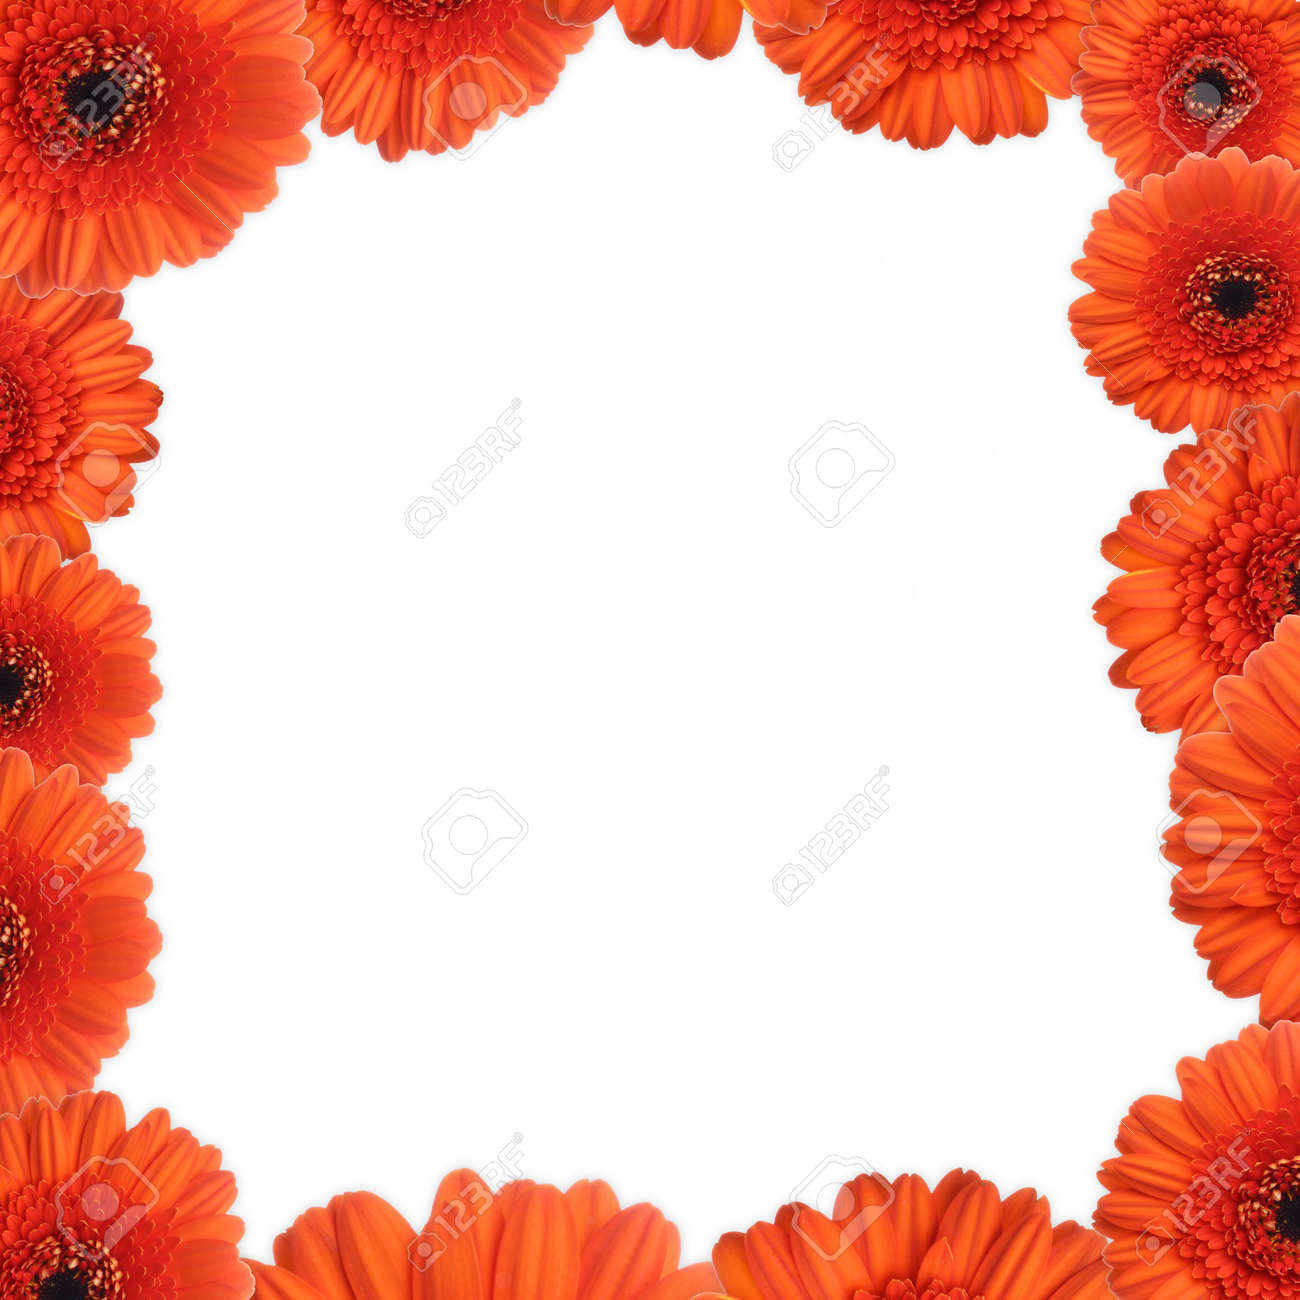 Red gerbera as a picture frame. Picture was made in a studio. Stock Photo - 795677